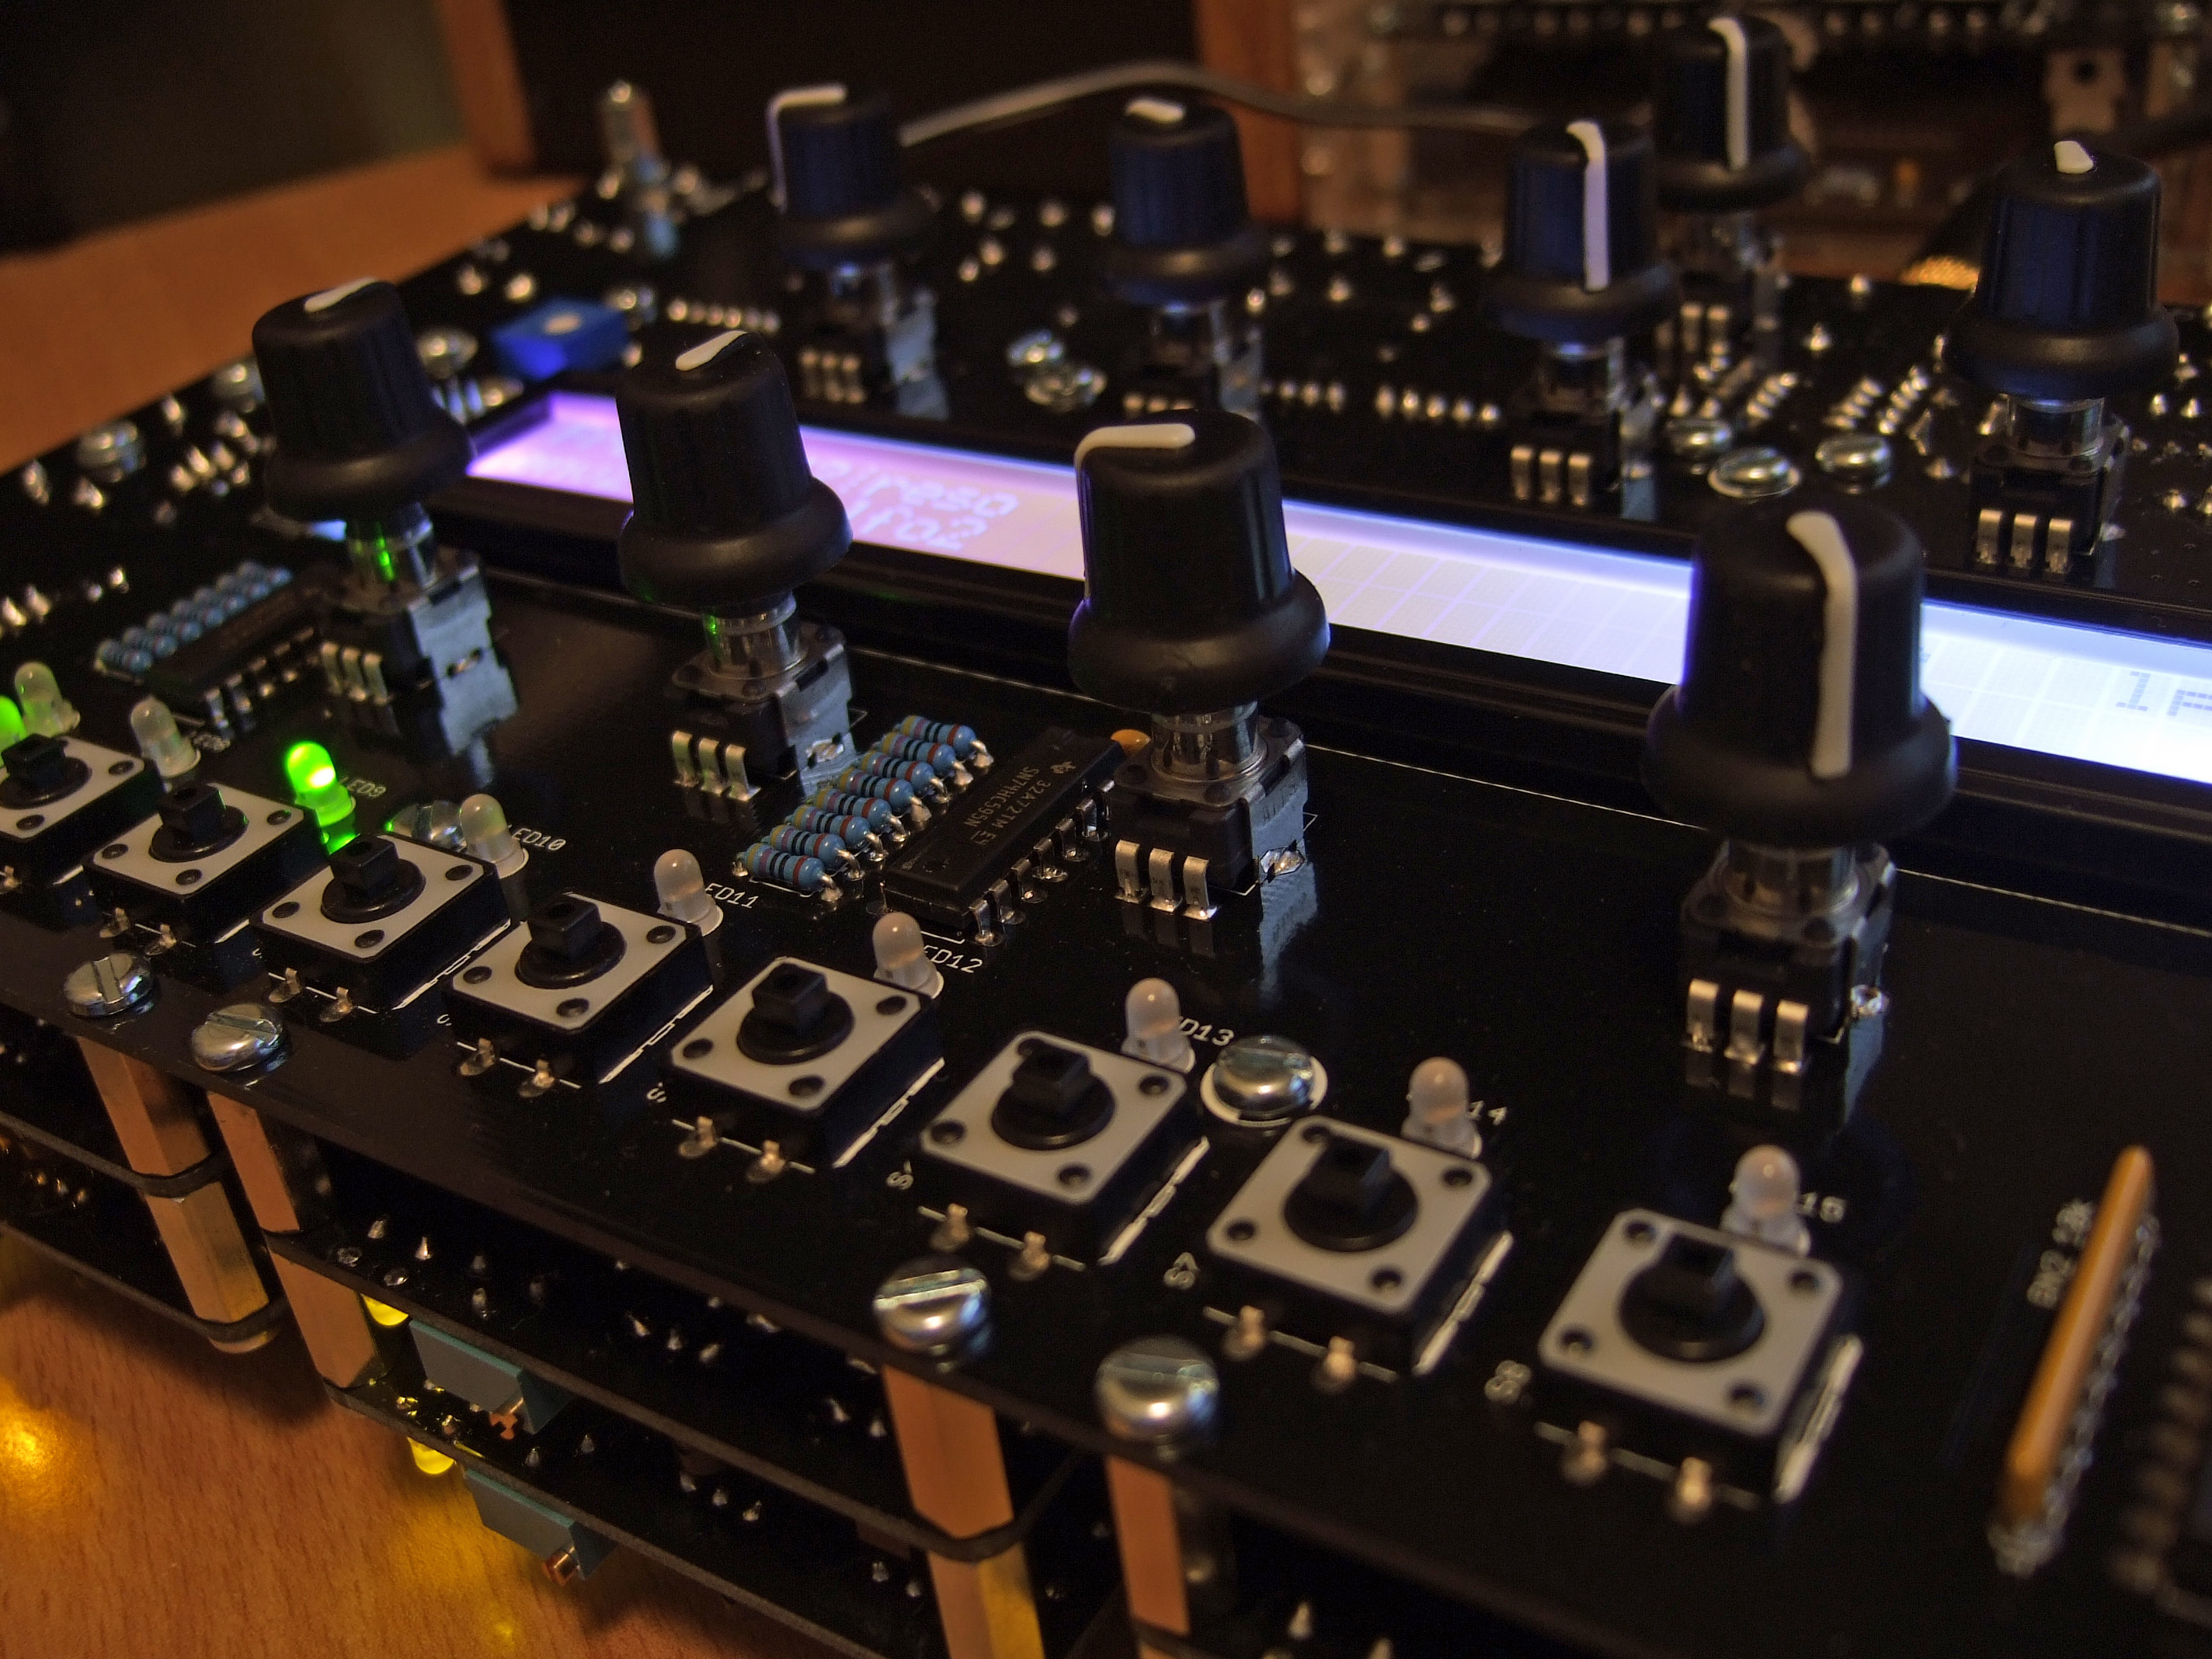 A DIY 6-voice poly digital/analogue hybrid. Check out those voice cards underneath.